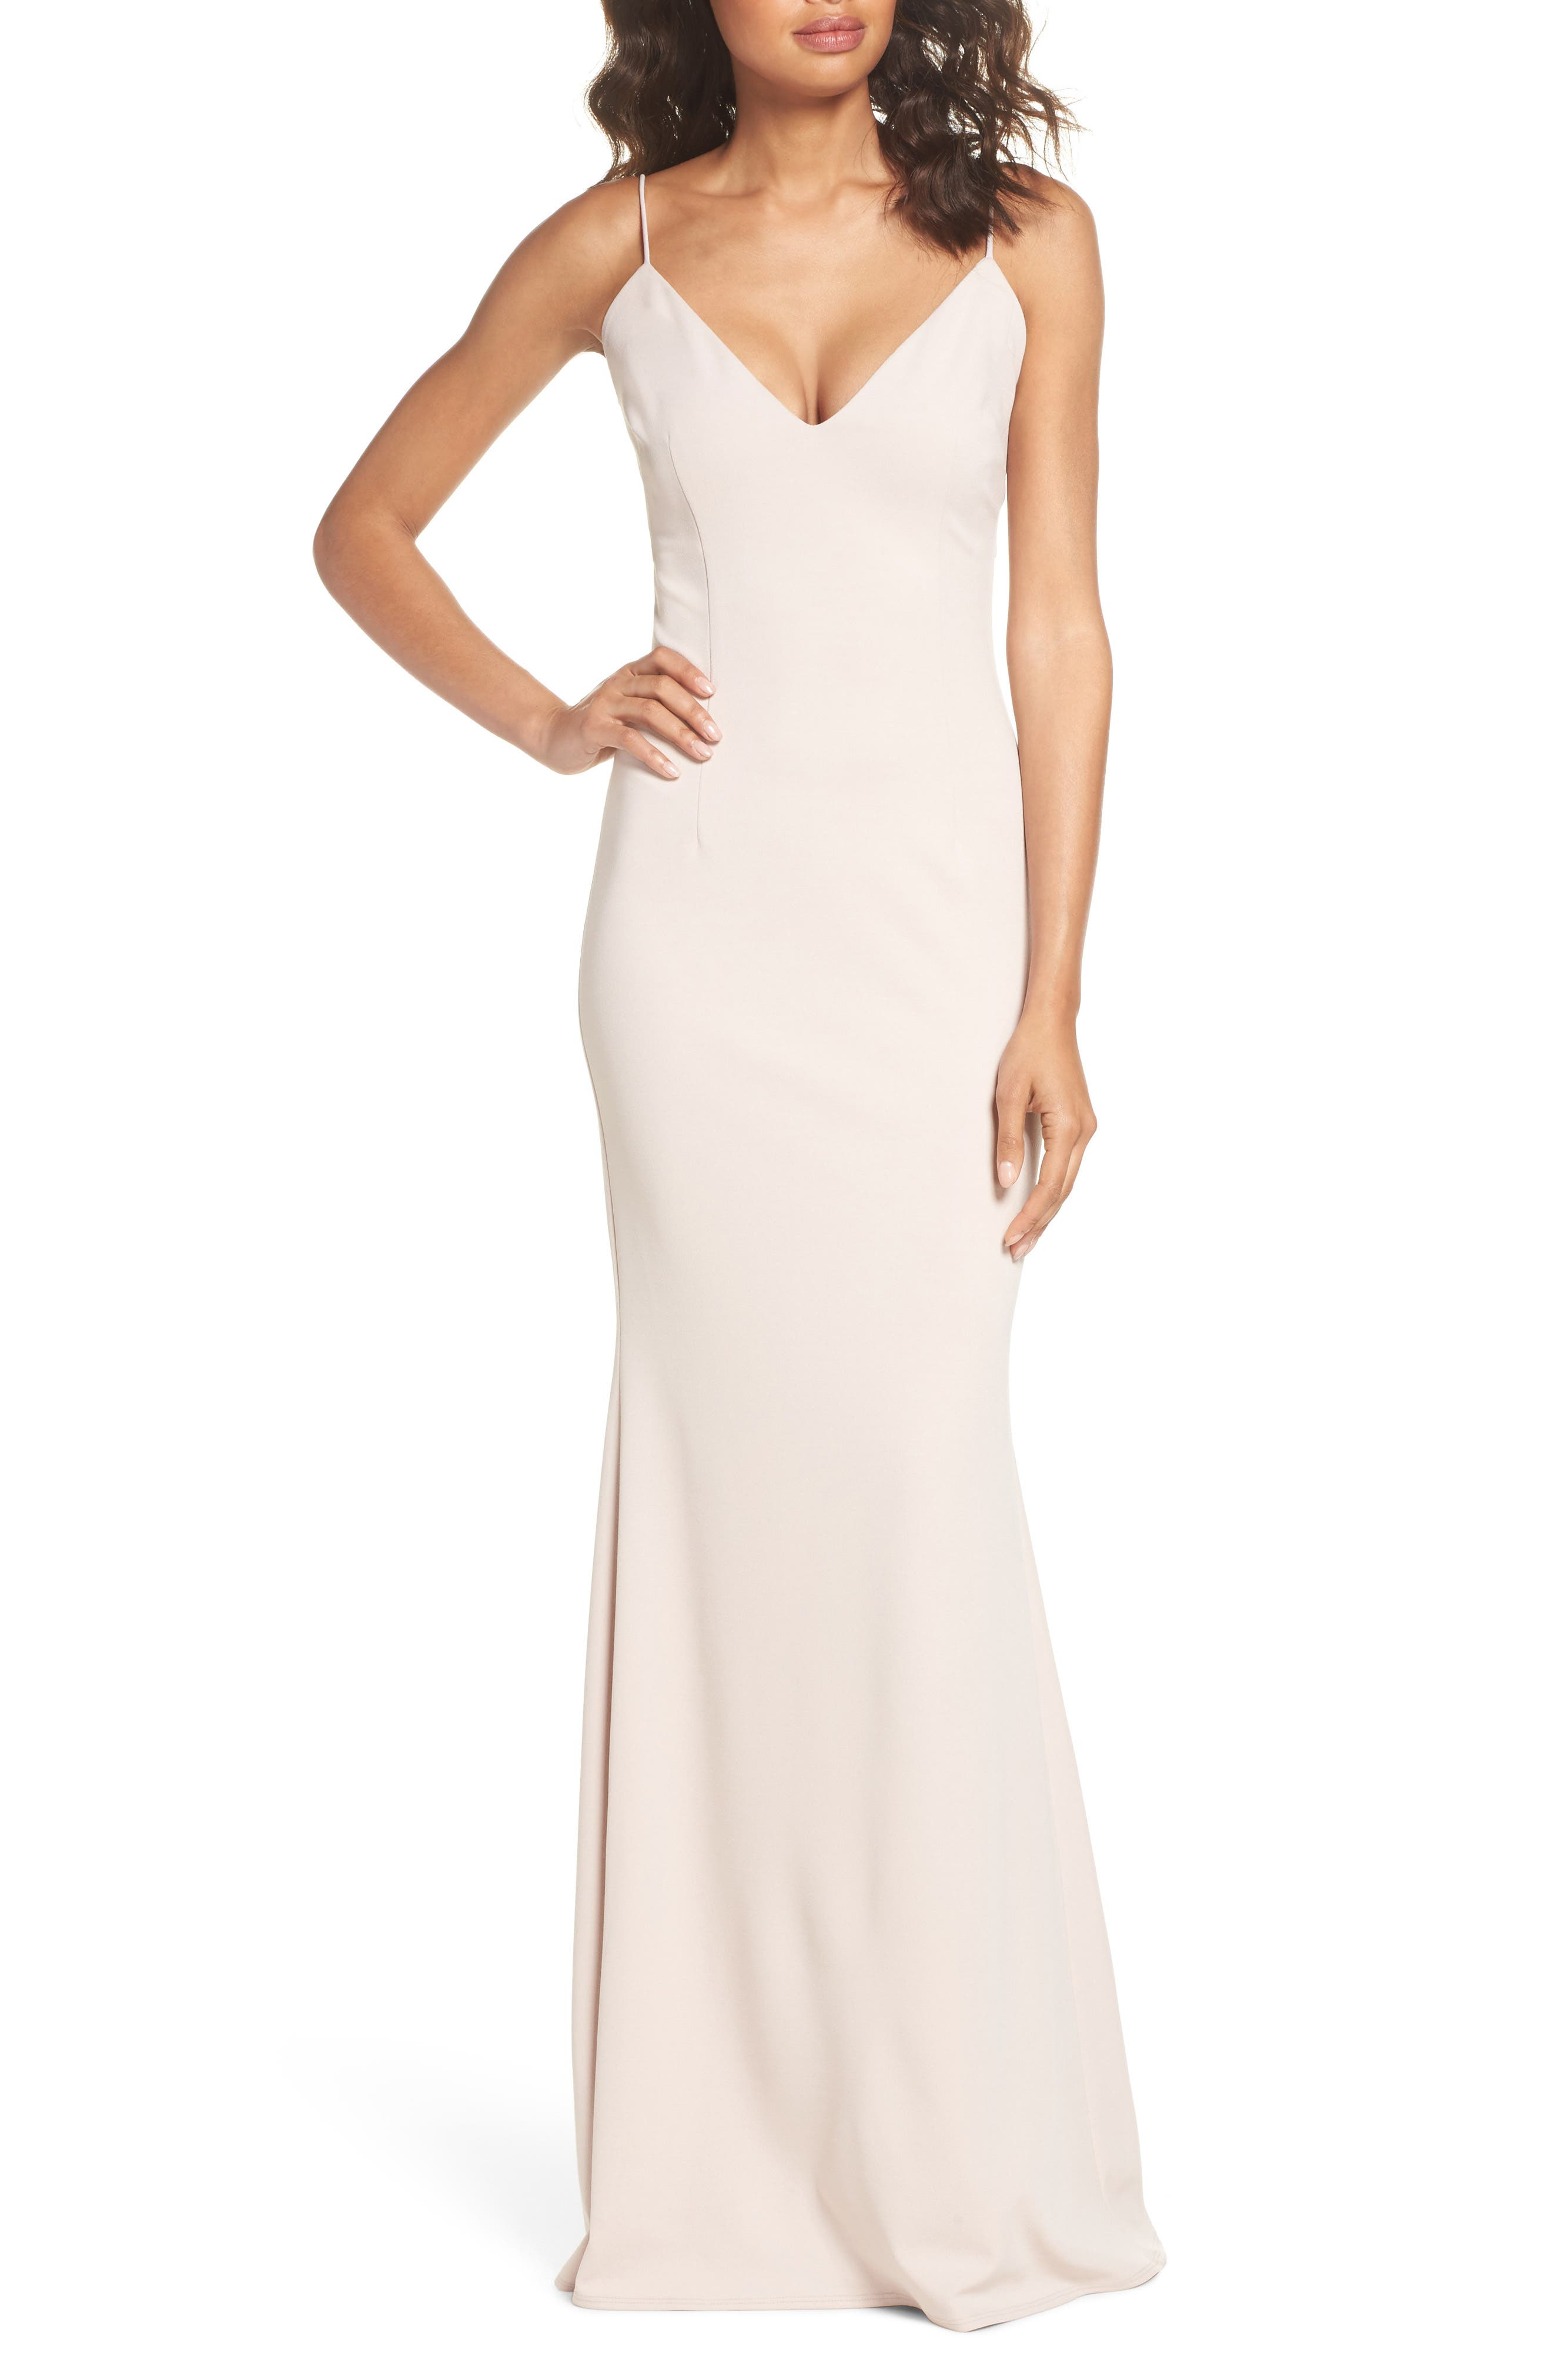 Katie May Bambi Cutout Mermaid Gown